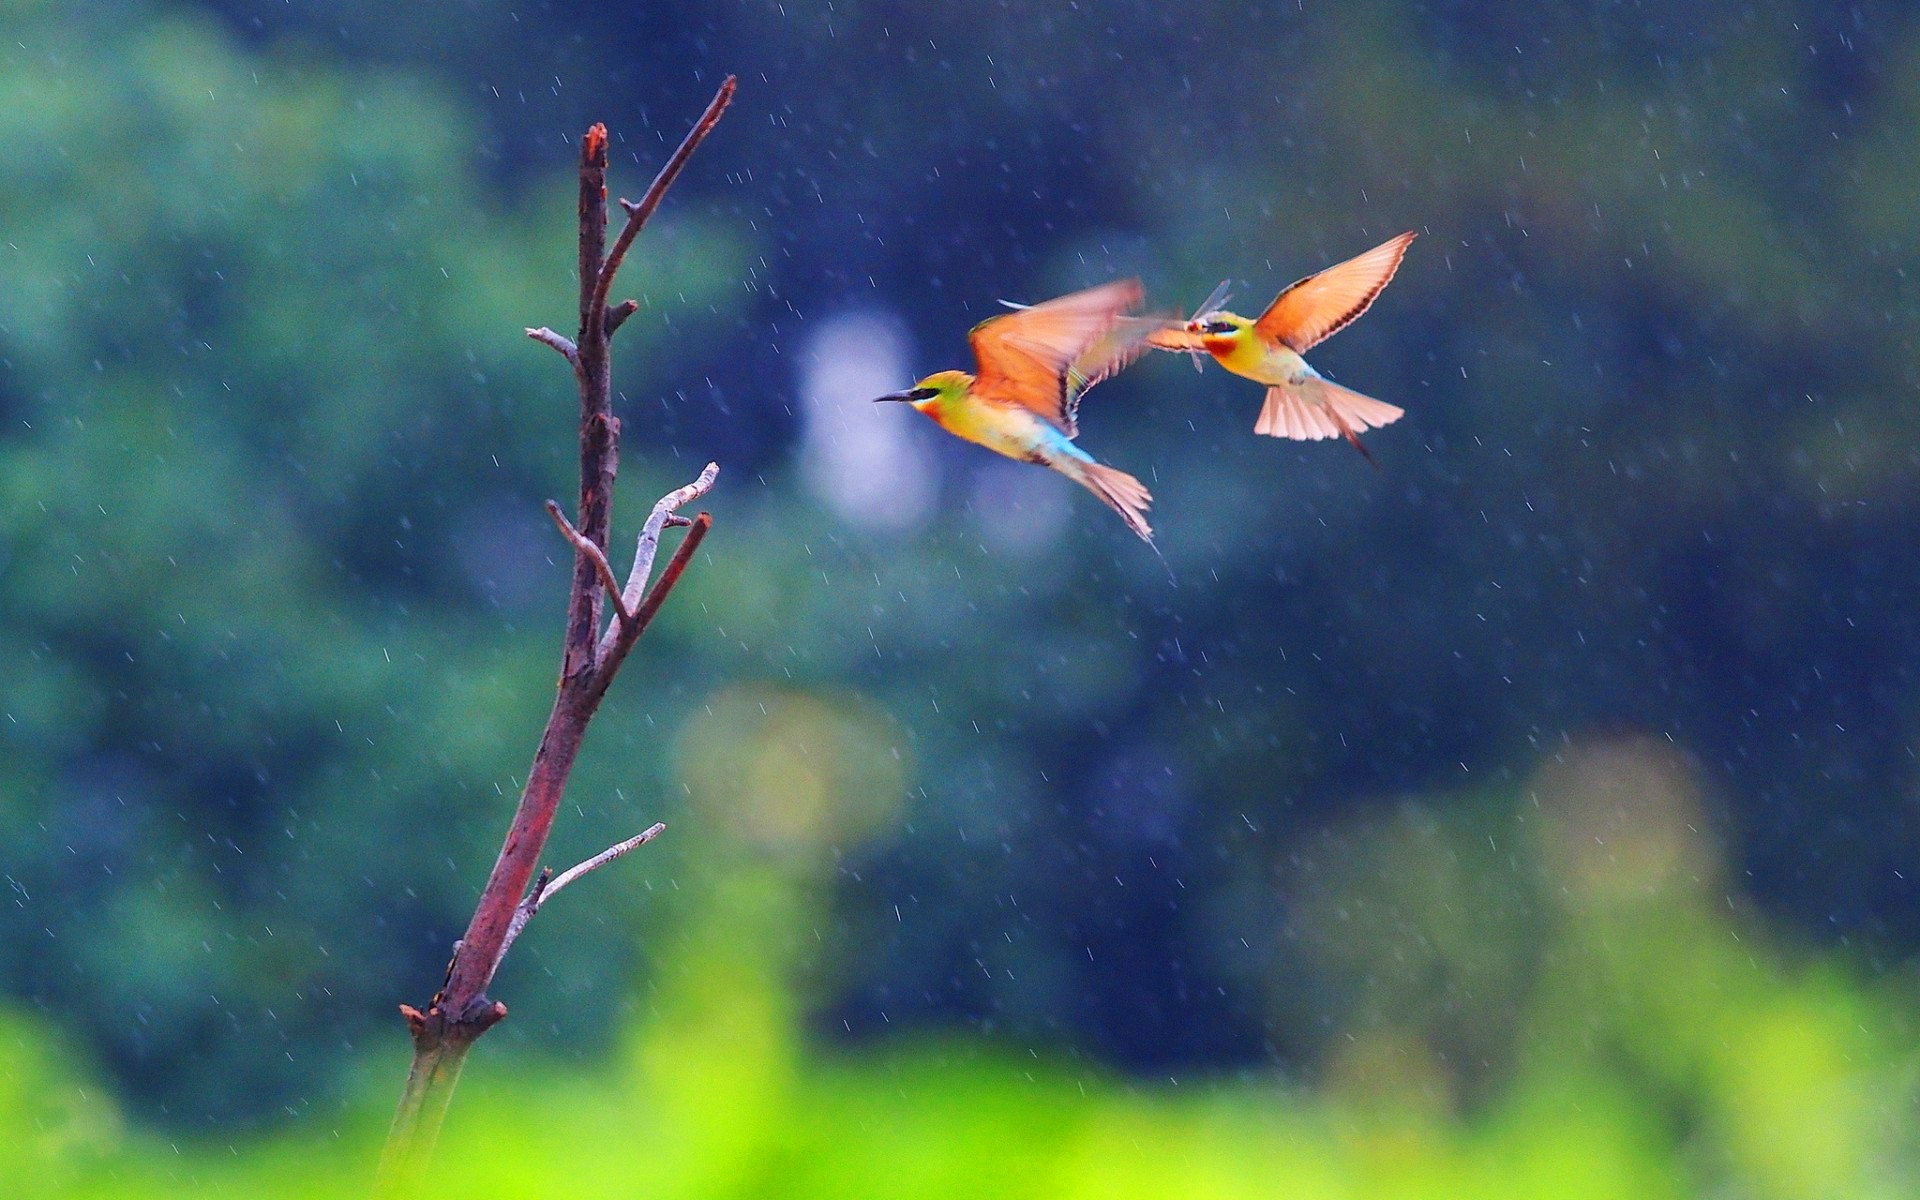 two_birds_flying_in_the_rain-wide